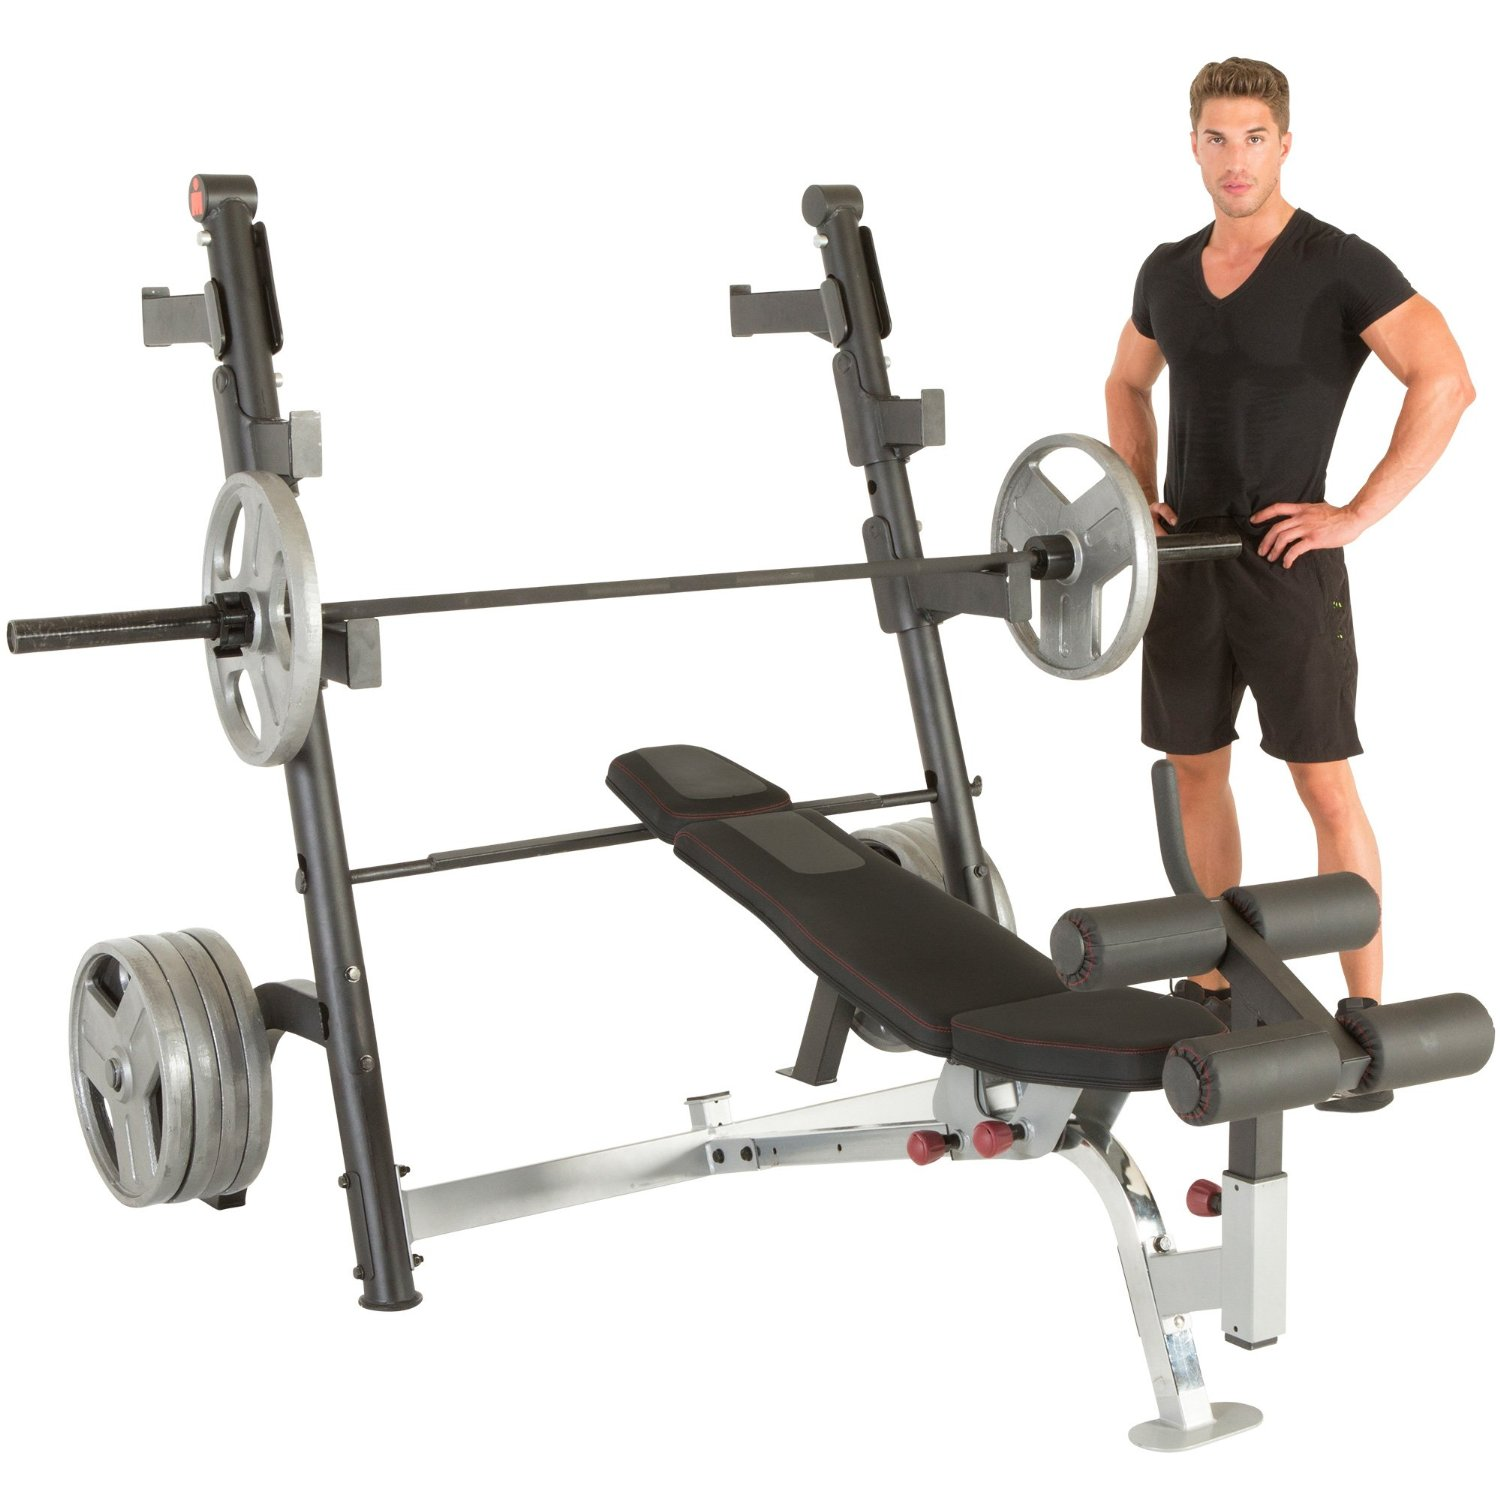 weight olympic amazon bench com piece with outdoors and two weights rack squat dp set sports